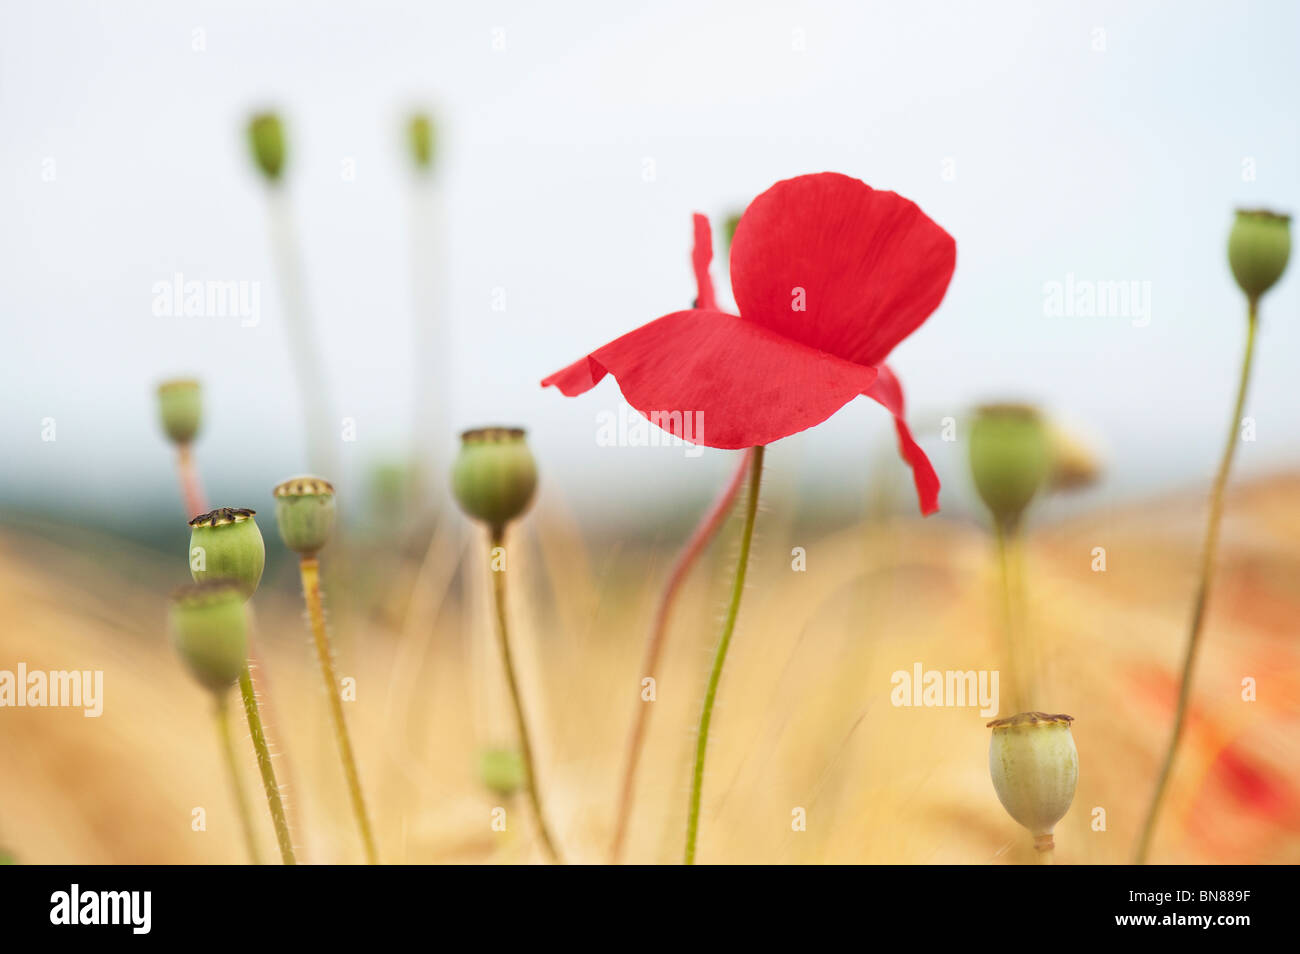 Papaver rhoeas. Field poppy in amongst barley in a field in the English countryside - Stock Image